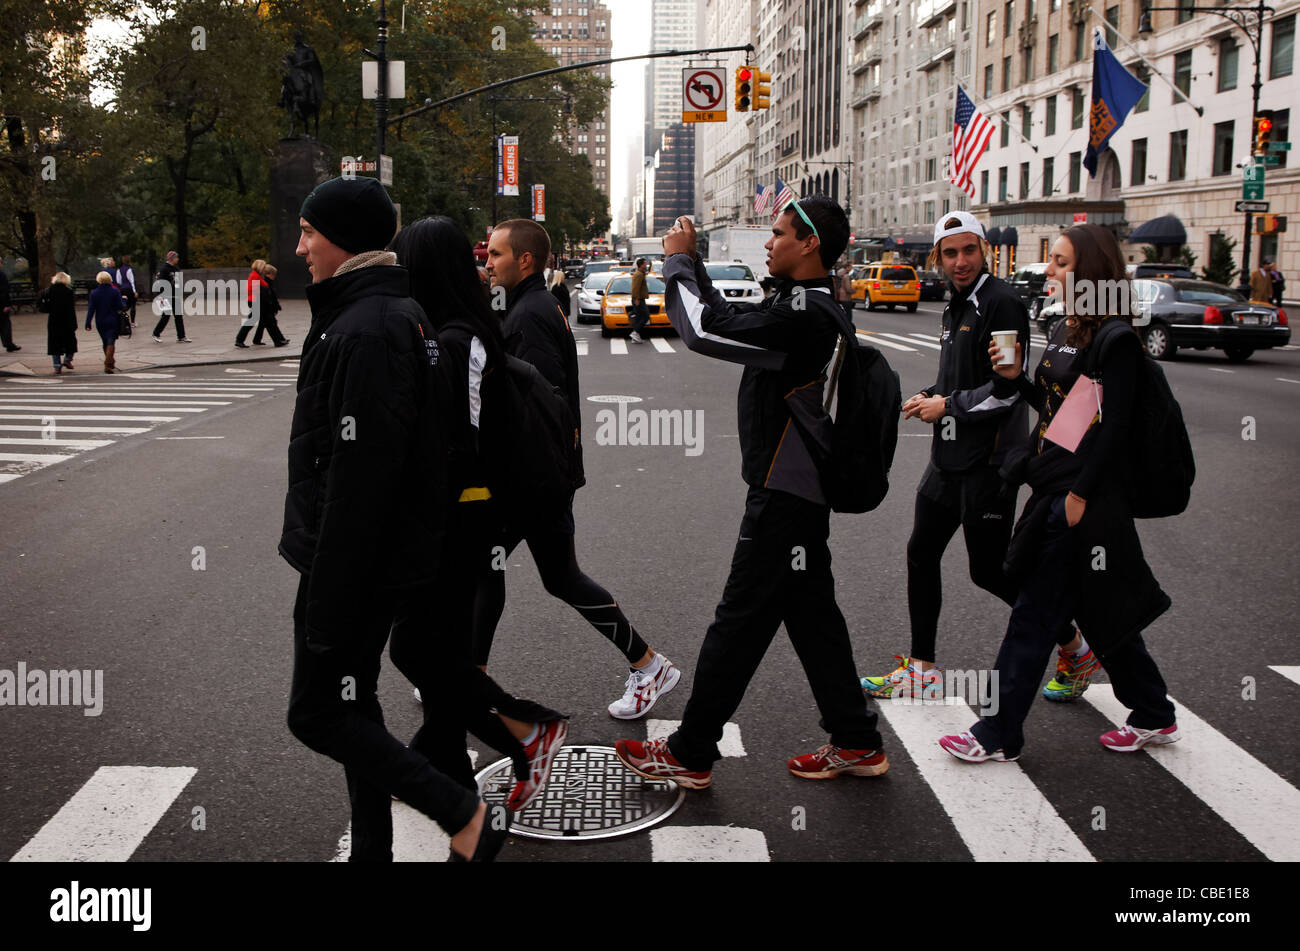 Australian Indigenous Marathon Project team member Reggie Smith from Alice Springs get his first look at New York - Stock Image